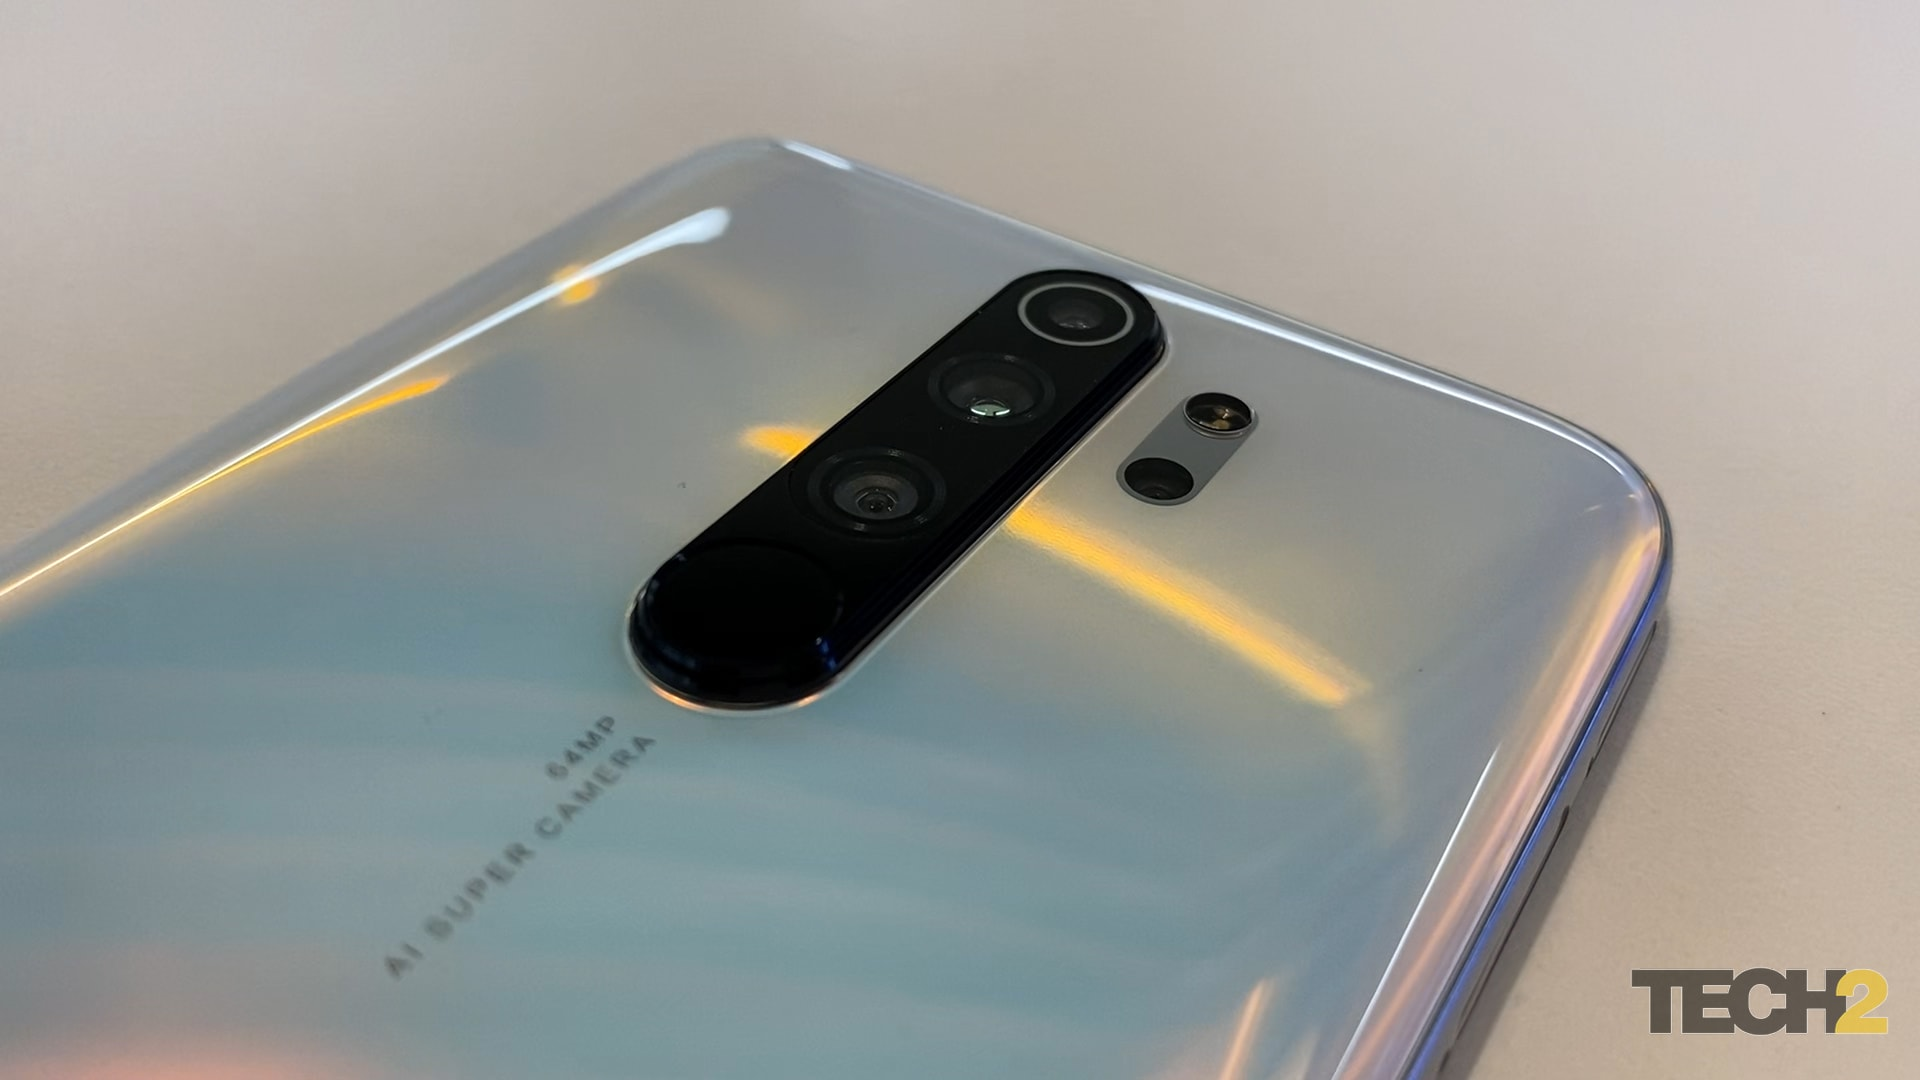 Redmi Note 8 Pro has a quad-camera system.